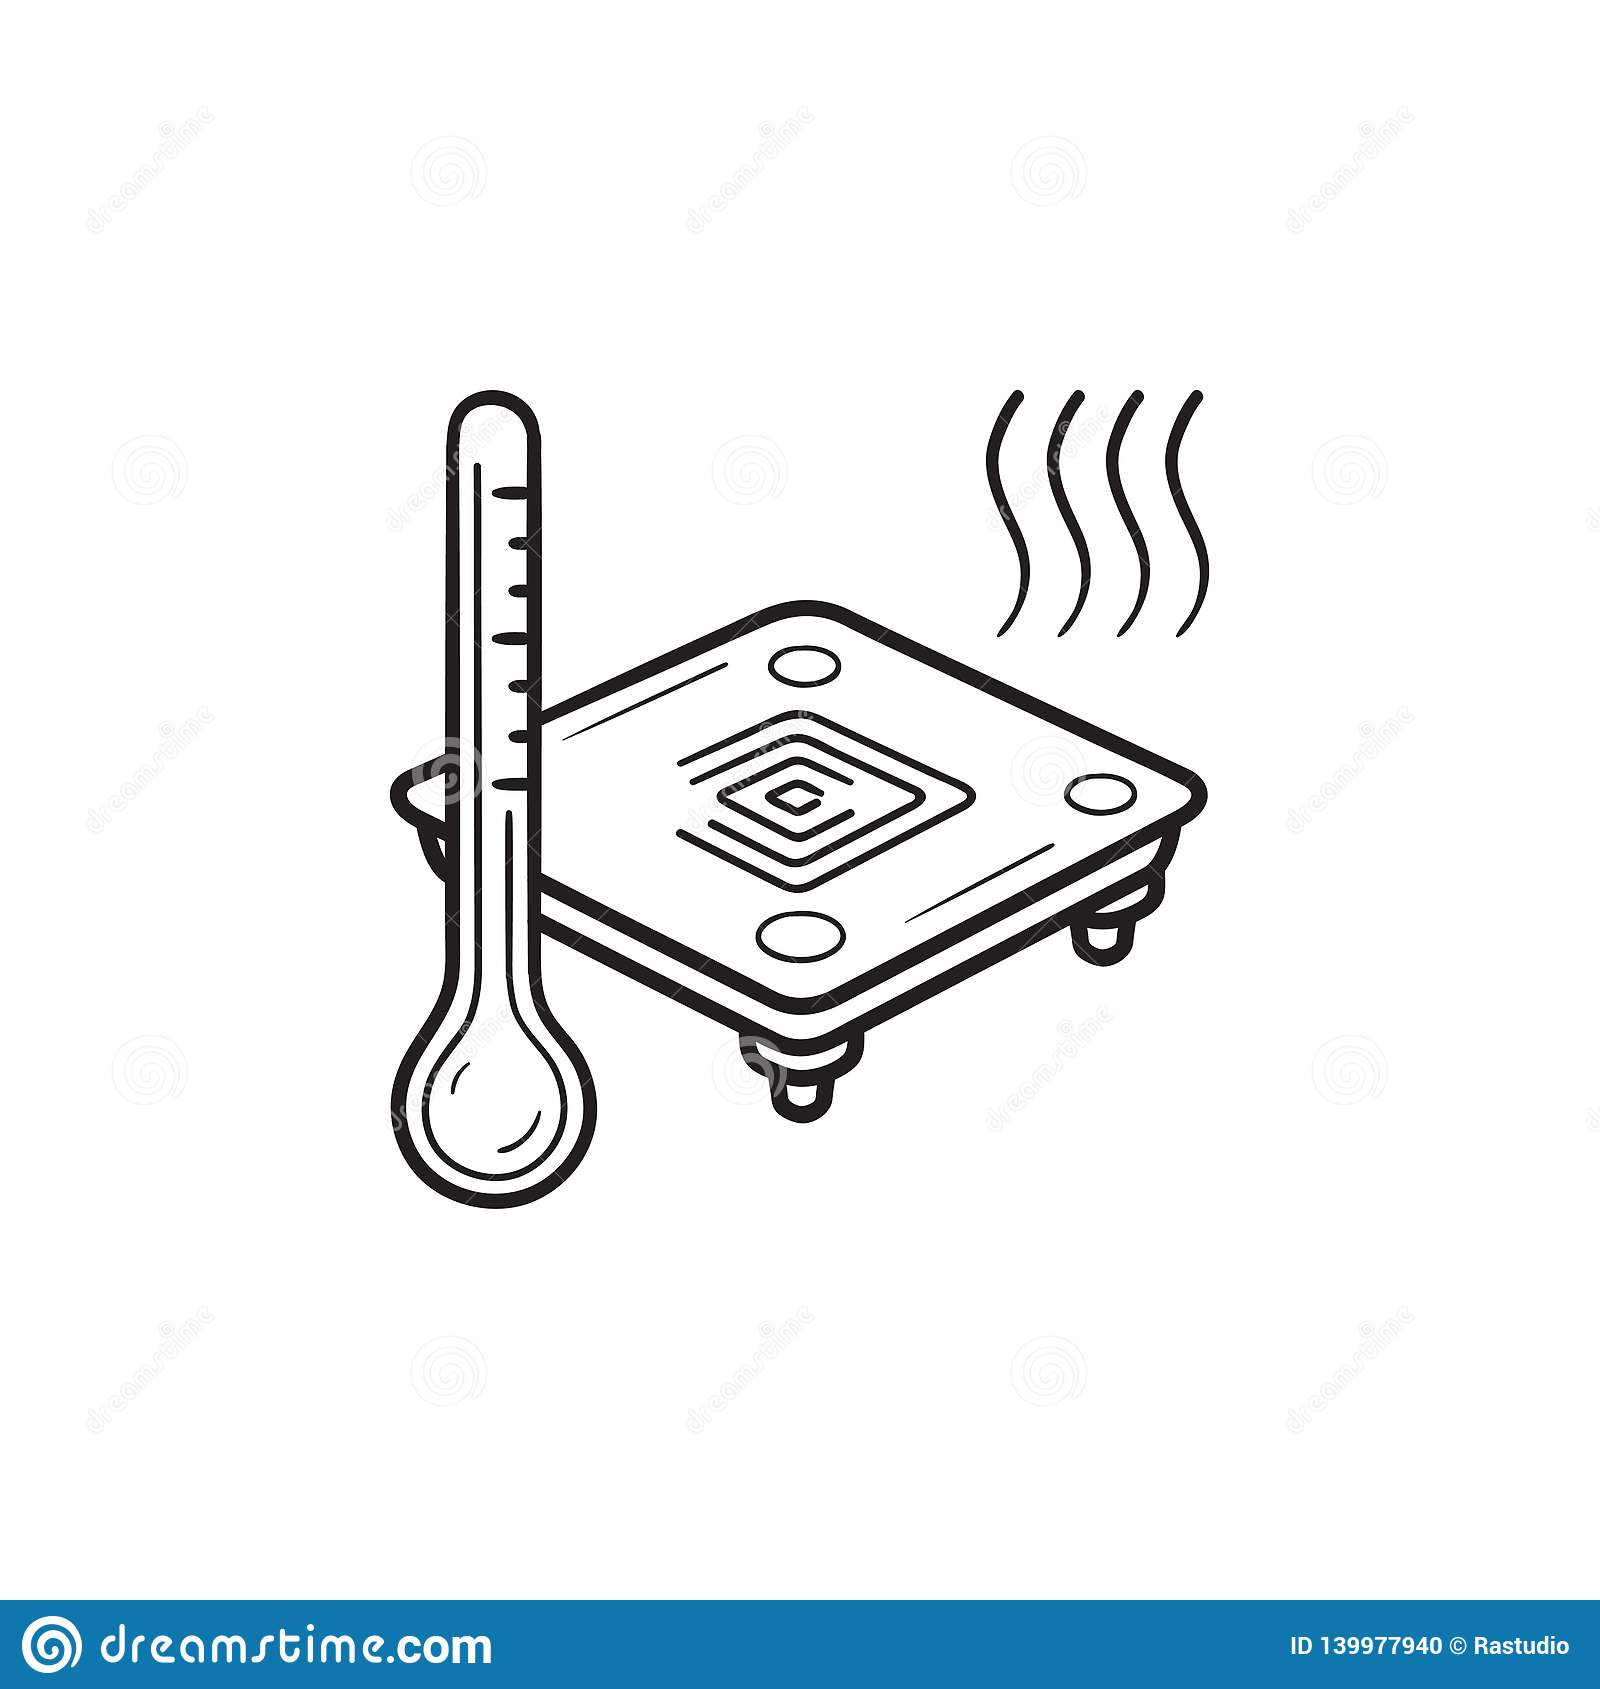 3d Printer Heated Bed Hand Drawn Outline Doodle Icon Stock